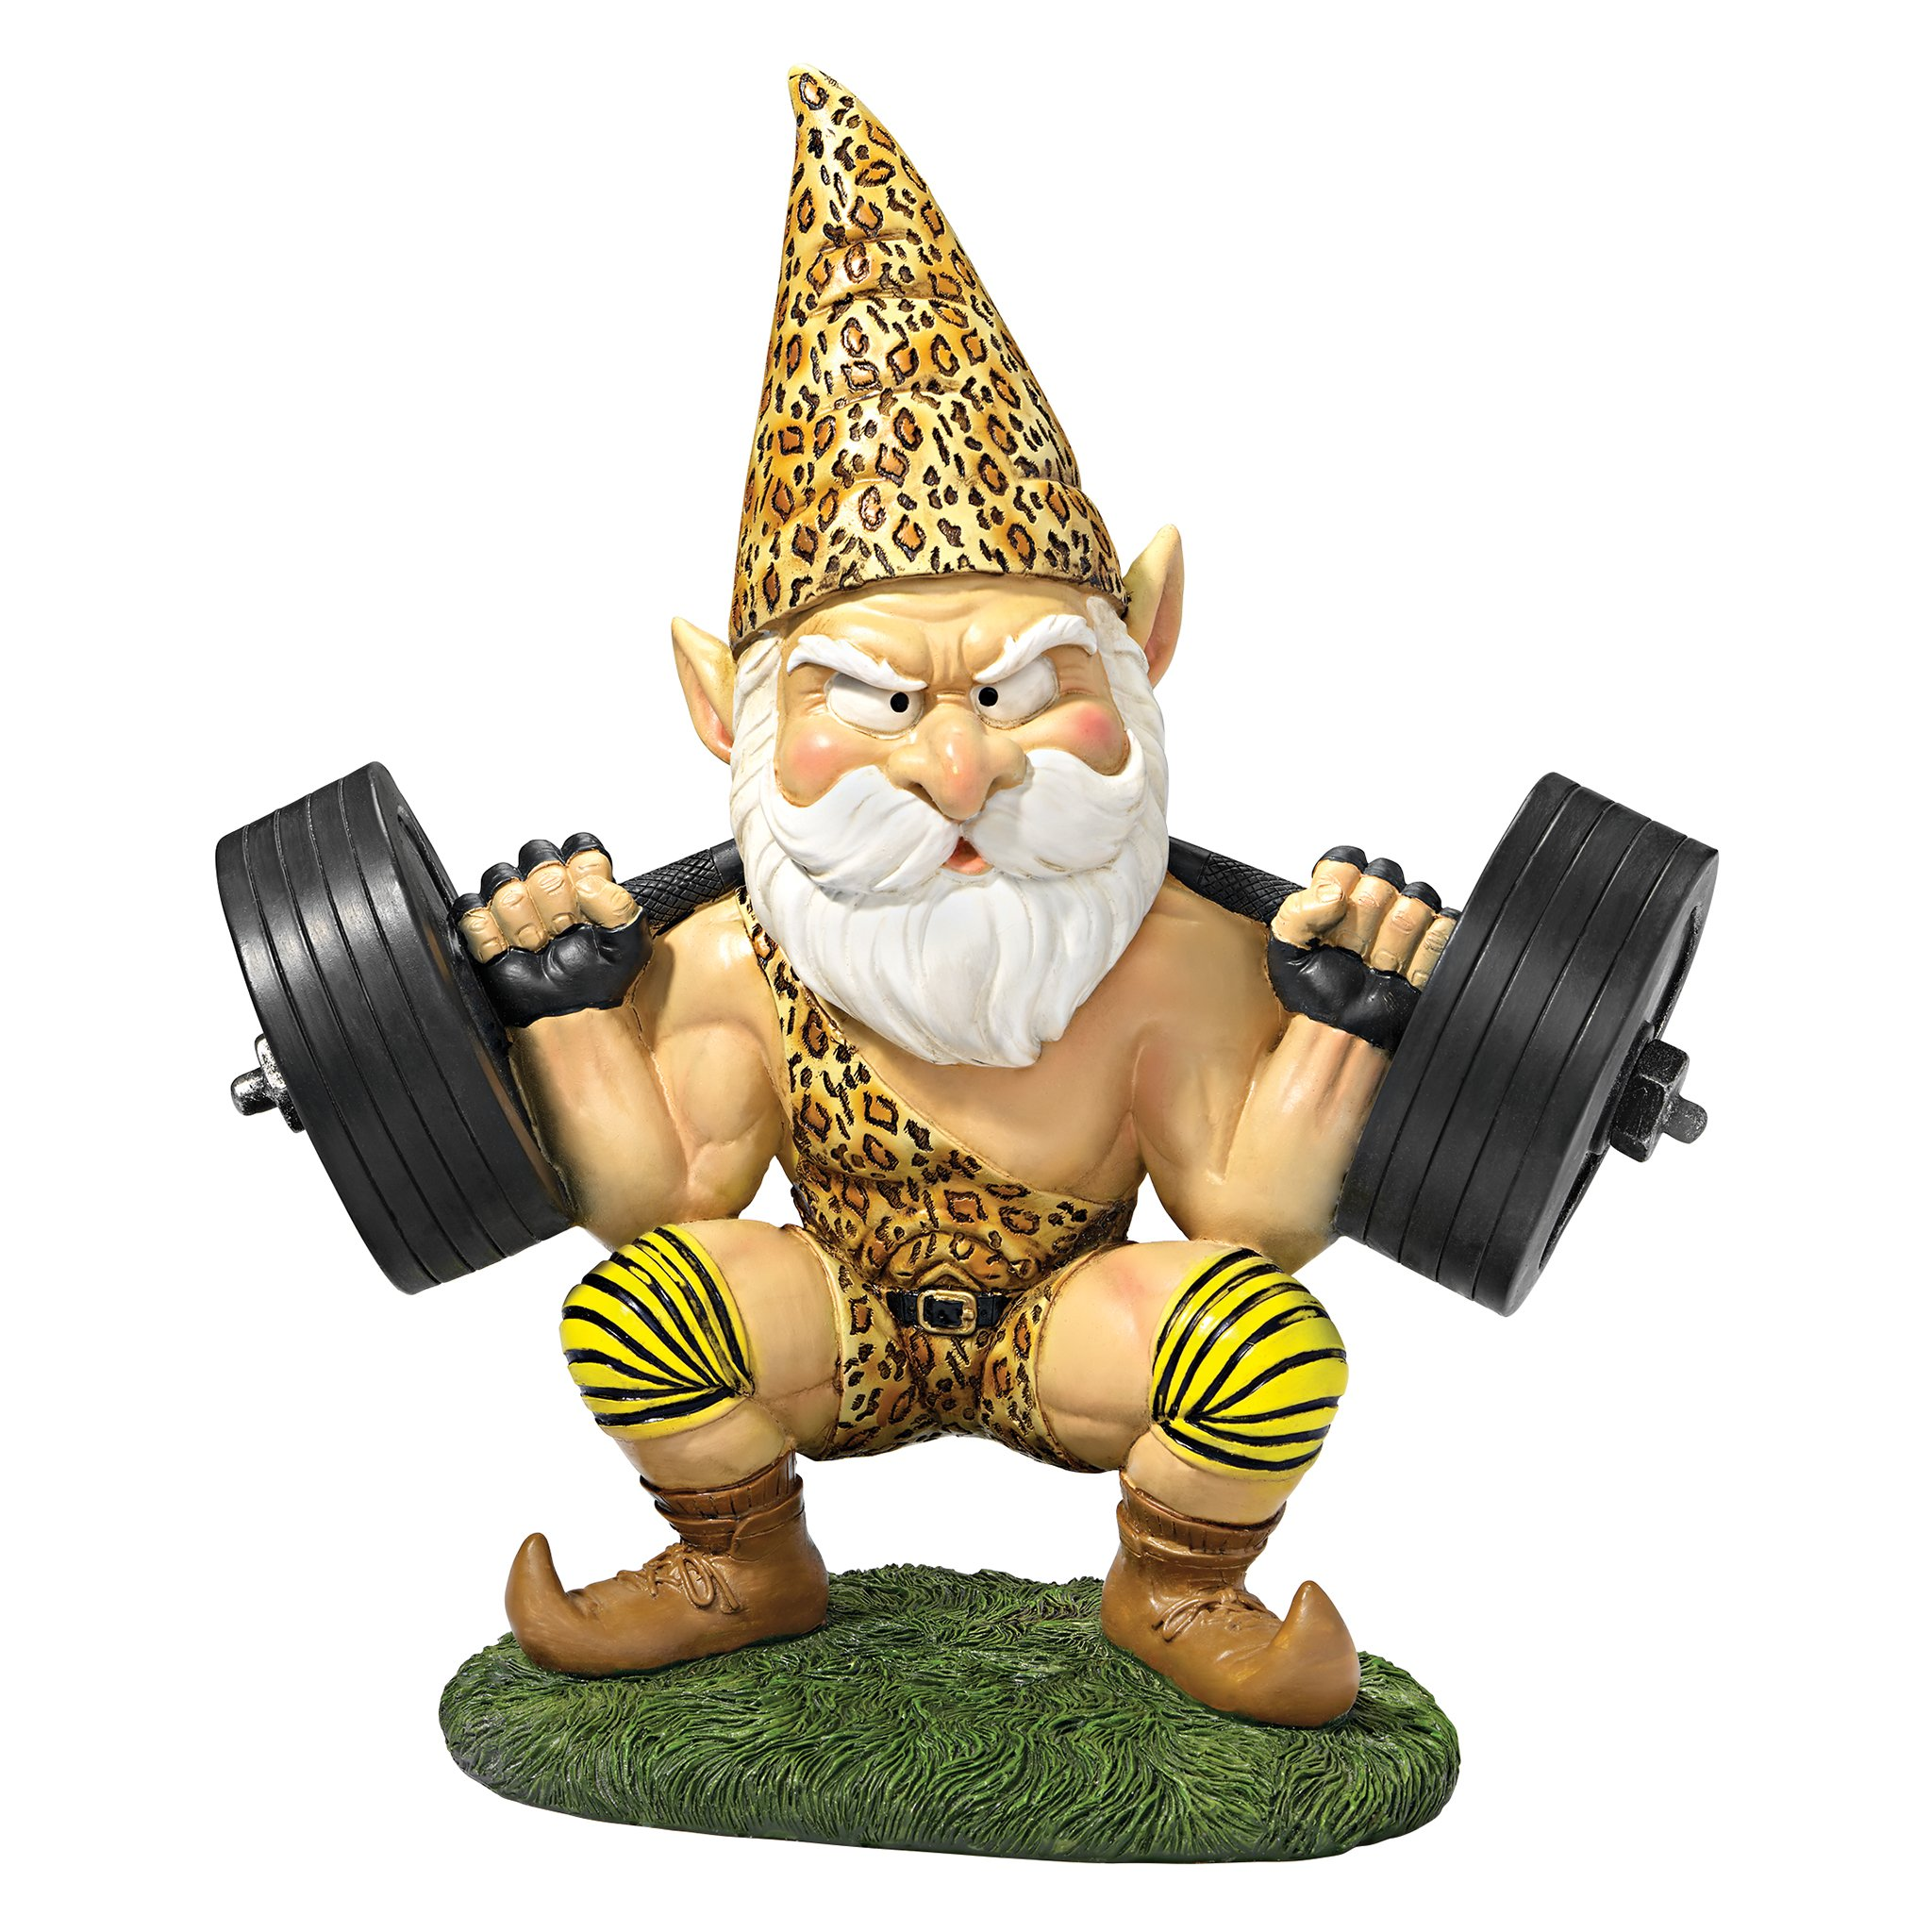 Design Toscano Garden Gnome Statue - Atlas the Athletic Weightlifting Gnome - Outdoor Garden Gnomes - Funny Lawn Gnome Statues